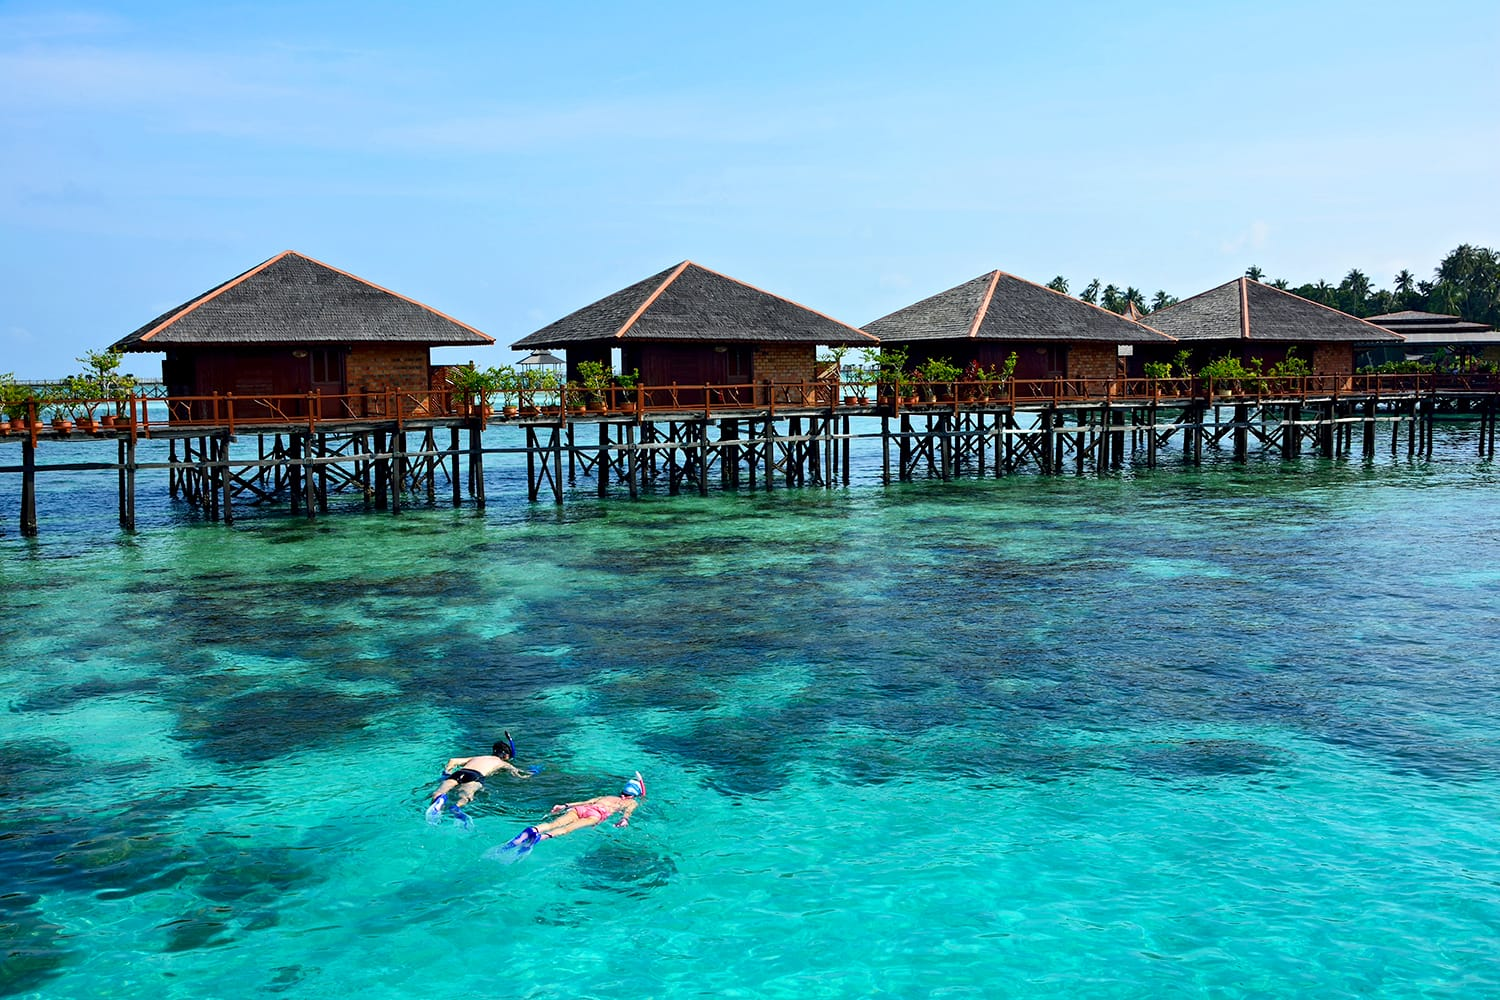 Snorkeling tourists in the ocean at Mabul island, Malaysia - Image